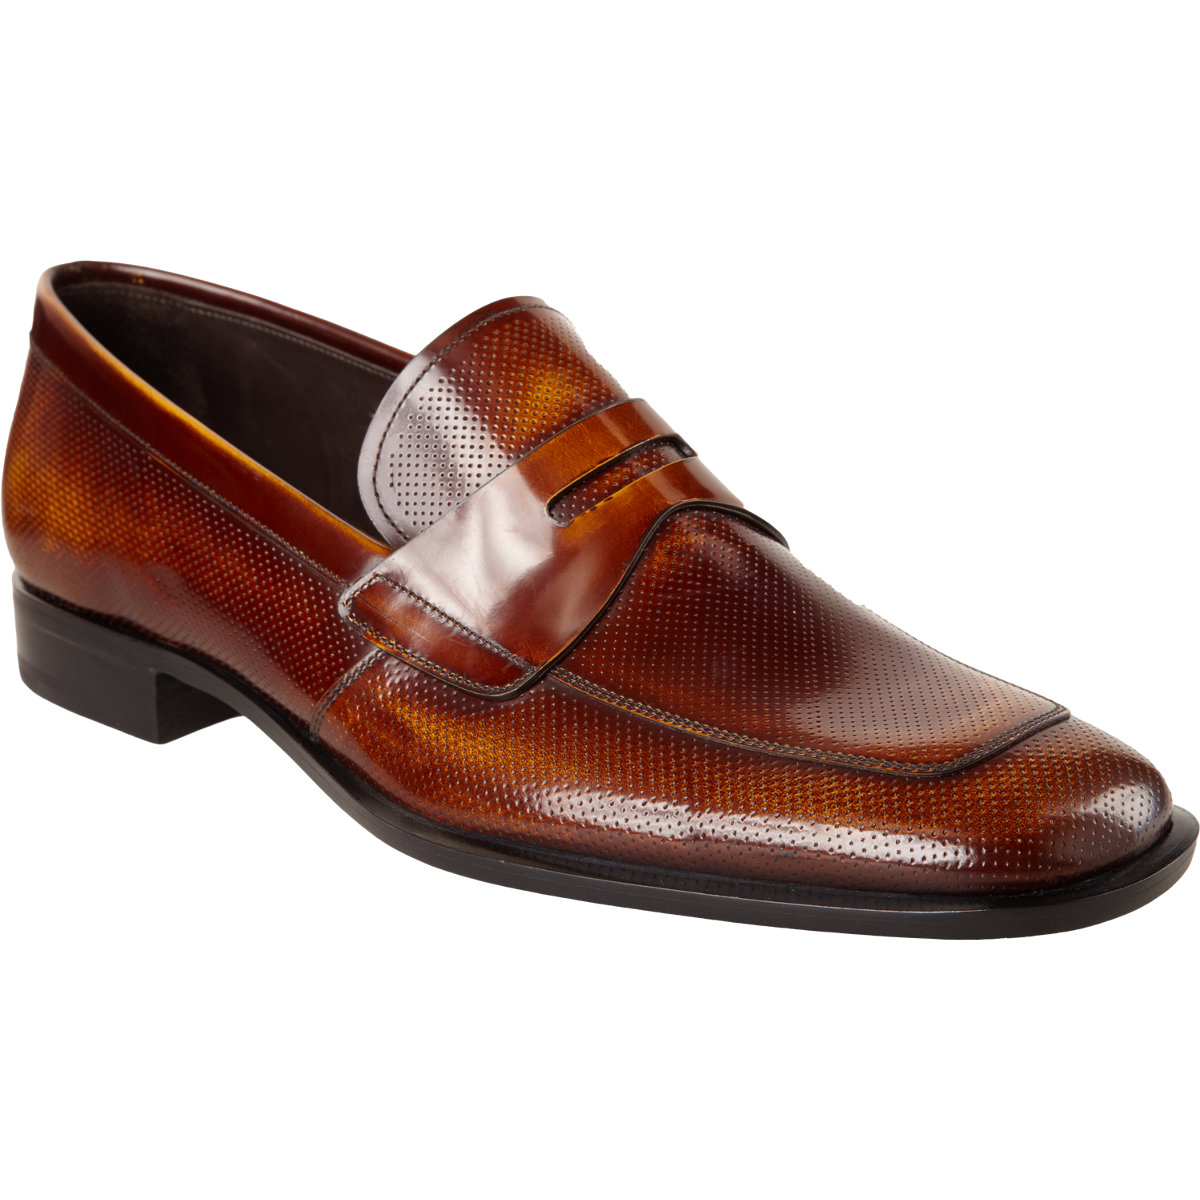 62939ff8c24 ... australia prada perforated apron toe penny loafer in brown for men lyst  9df46 1d497